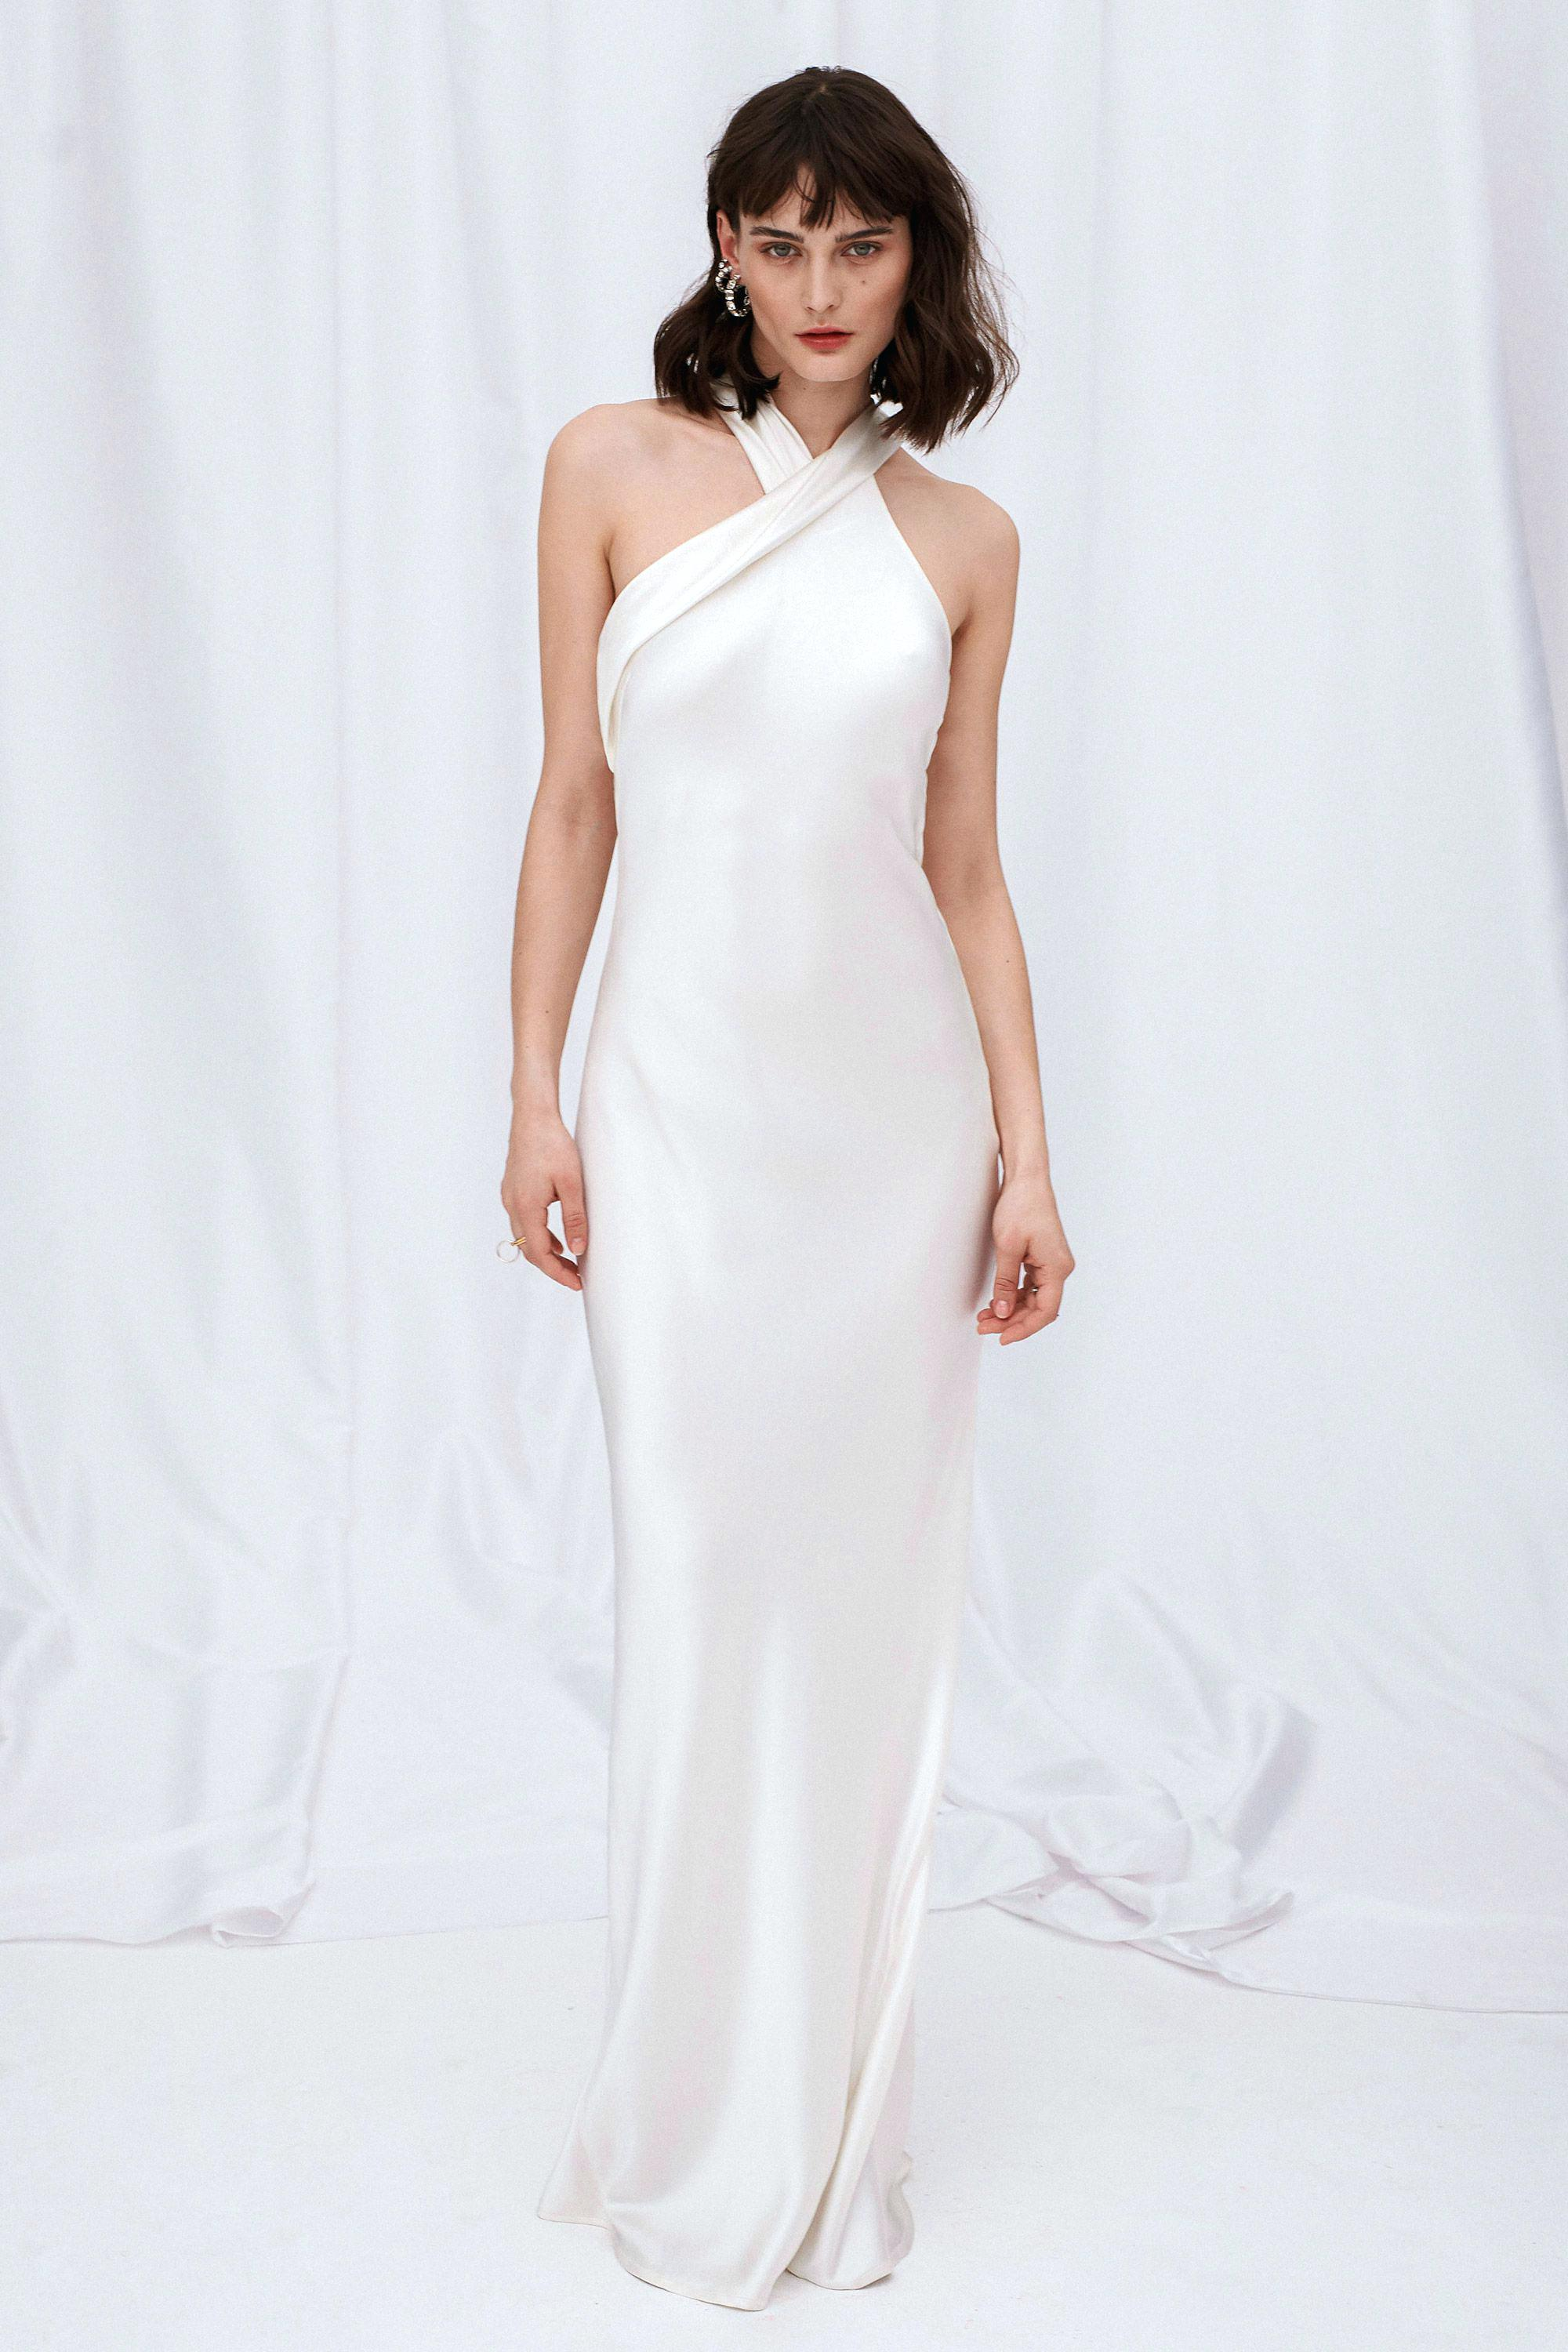 Sleek elegant wedding dress